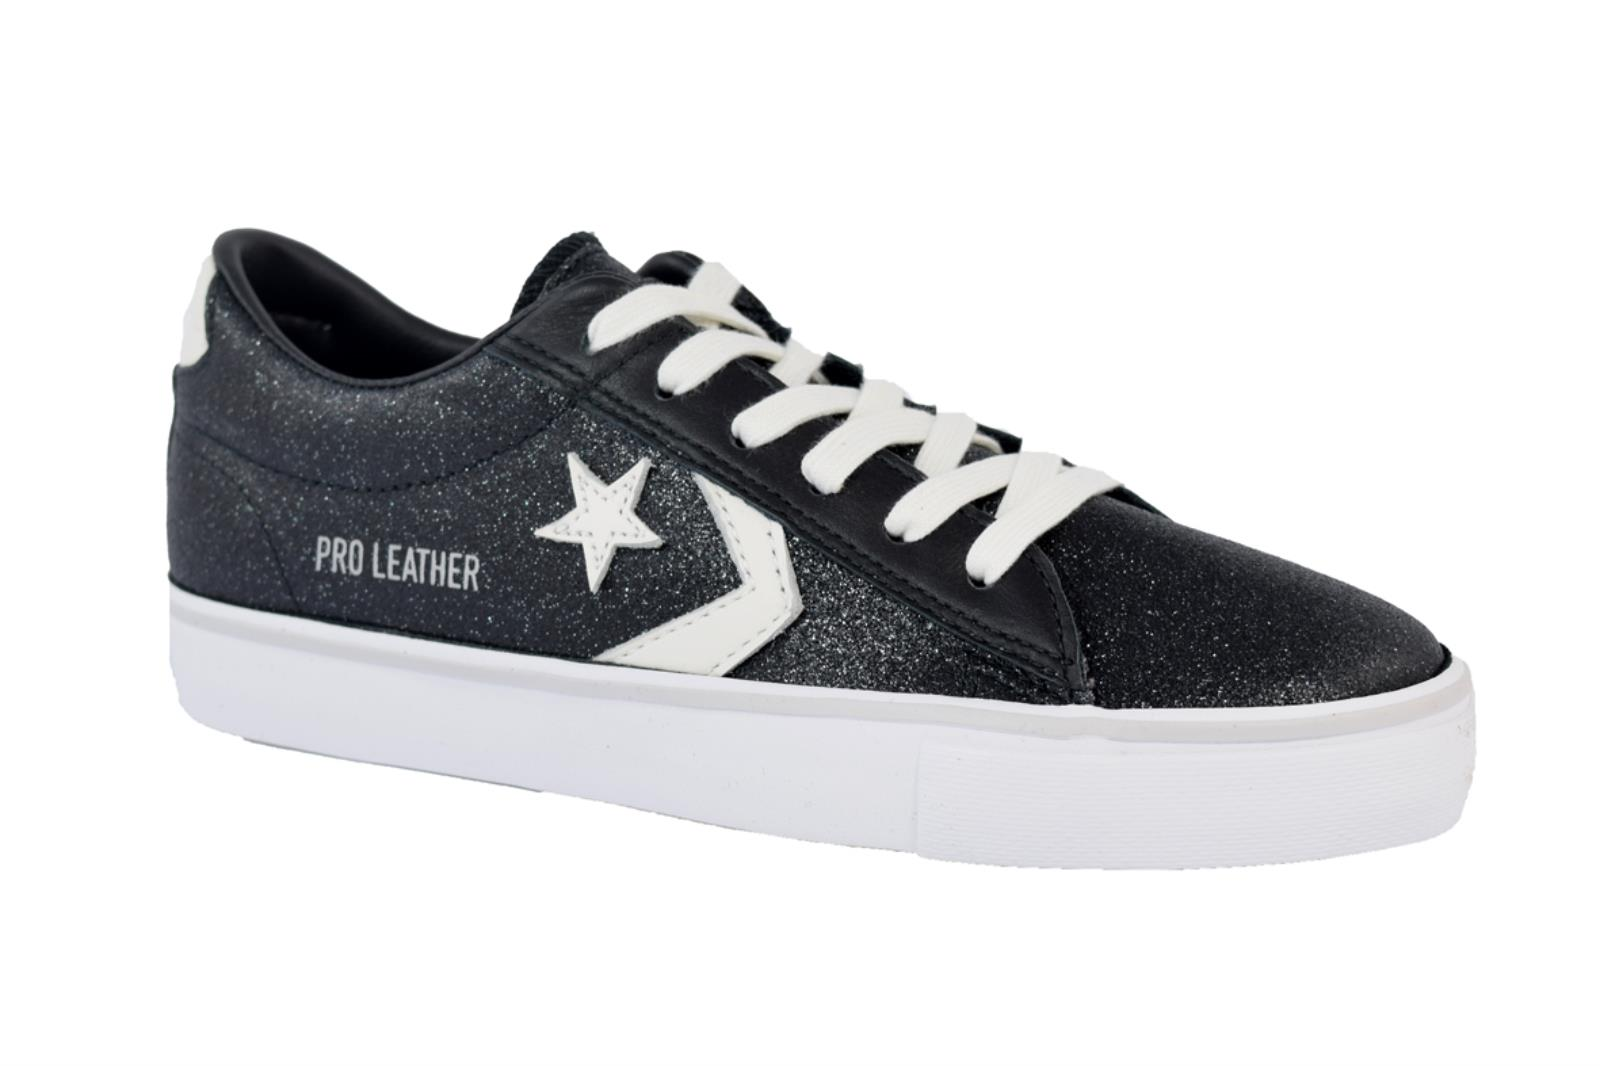 SNEAKERS CONVERSE PRO LEATHER VULC 561010C DA DONNA IN GLITTER DI COLORE NERO